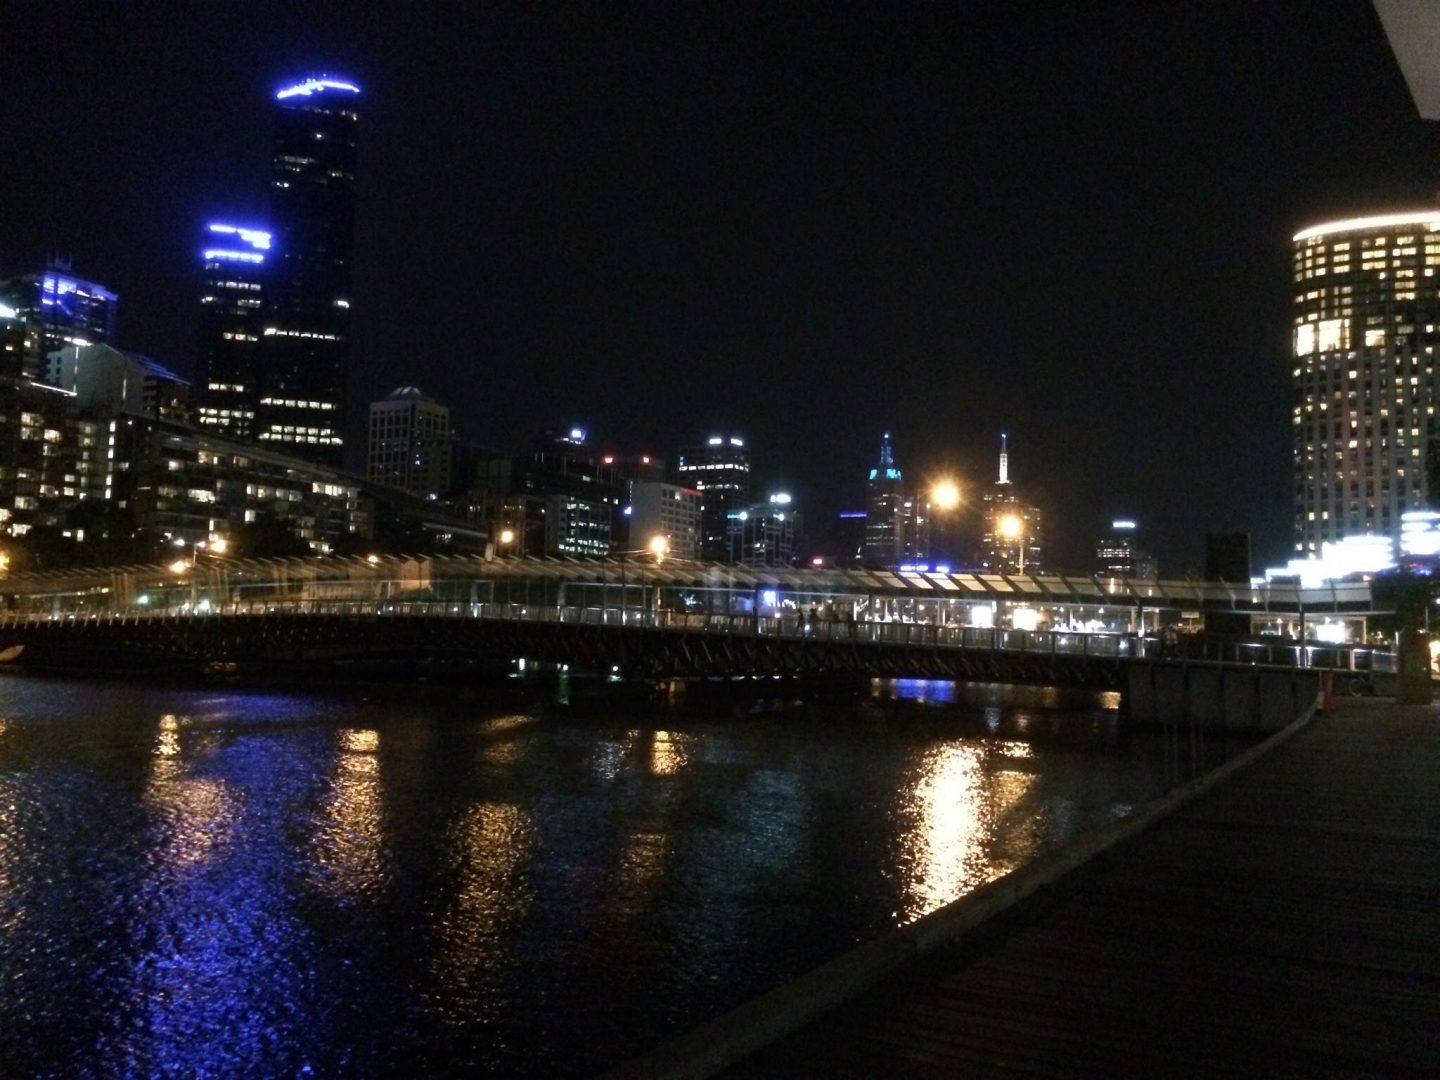 Melbourne's Yarra river by night